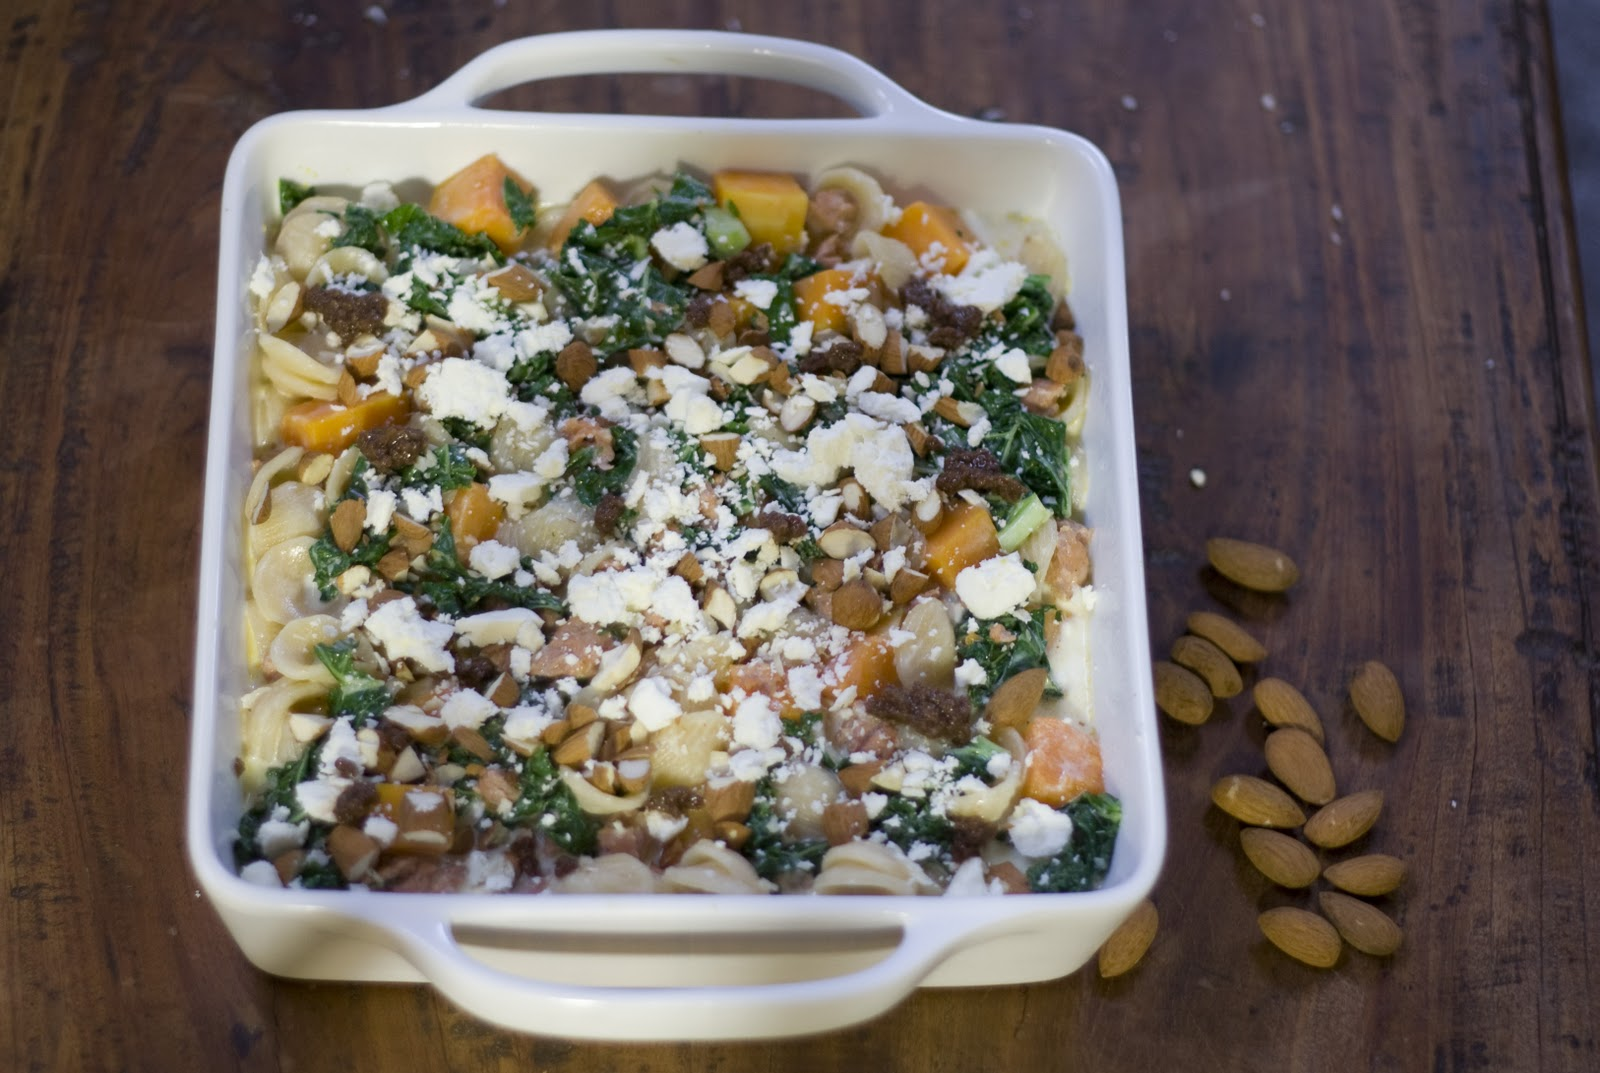 Baked Pasta with Butternut Squash, Sausage and Kale | Vintage Mixer